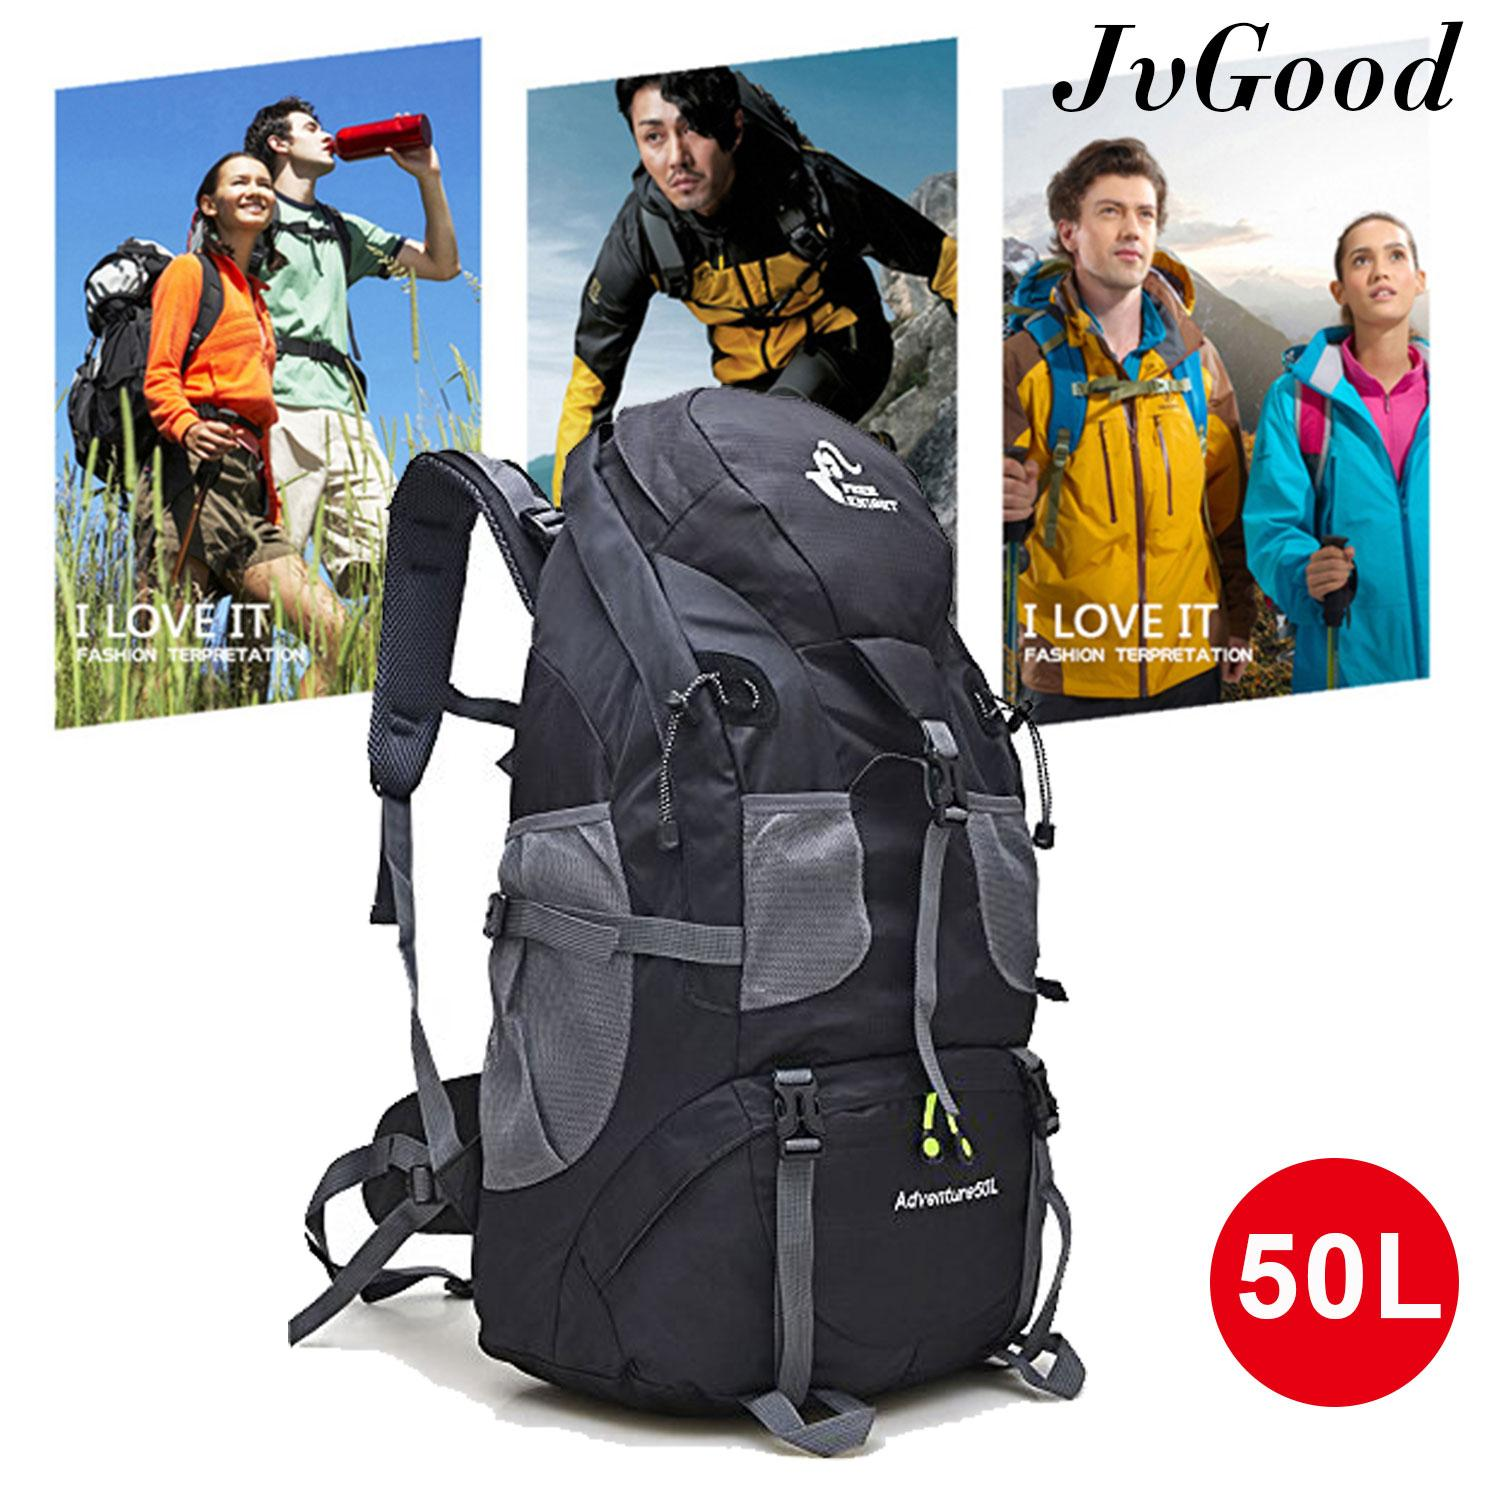 Jvgood Outdoor Hiking Backpack, 50l Hiking Daypacks Man Bag Sport Hiking Trekking Camping Travel Backpack Pack Bagpack Mountaineering Climbing Knapsack Rucksack By Jvgood